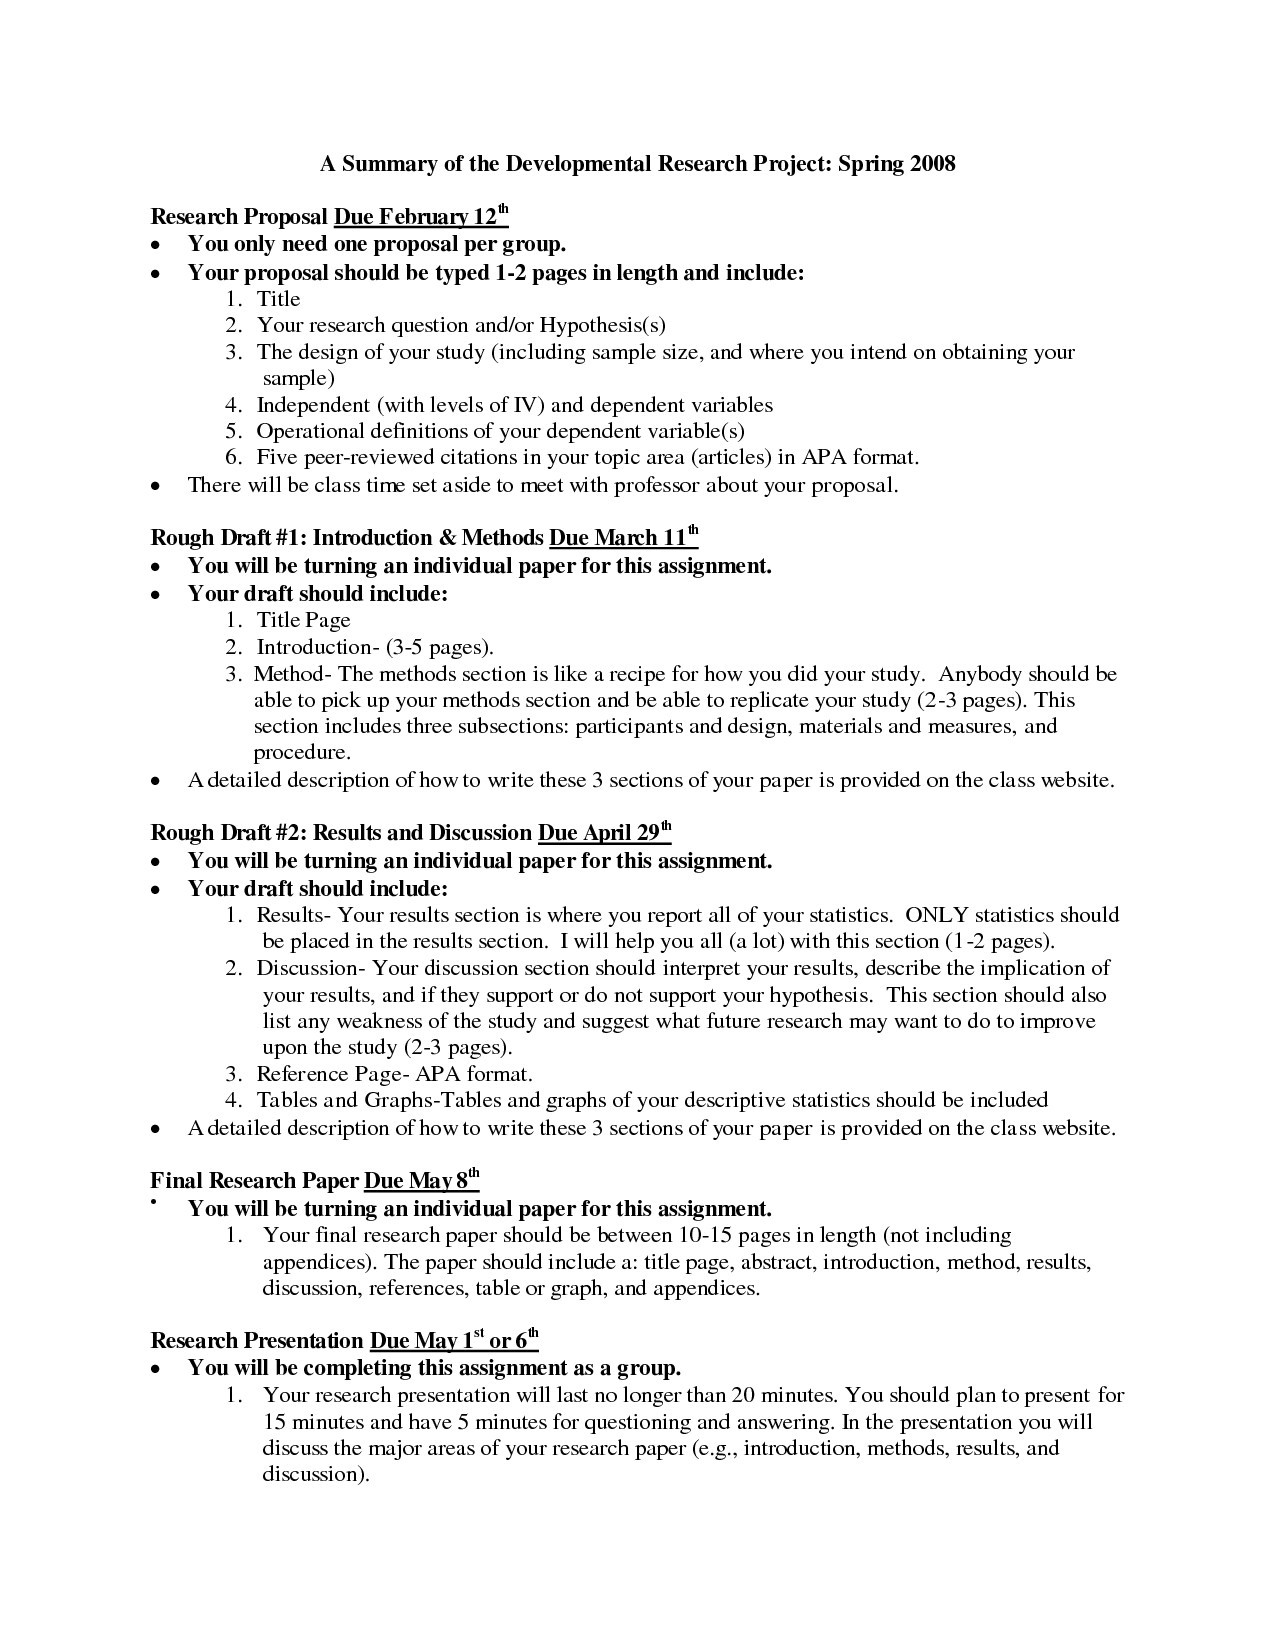 appendices in research paper example fresh proposal essay